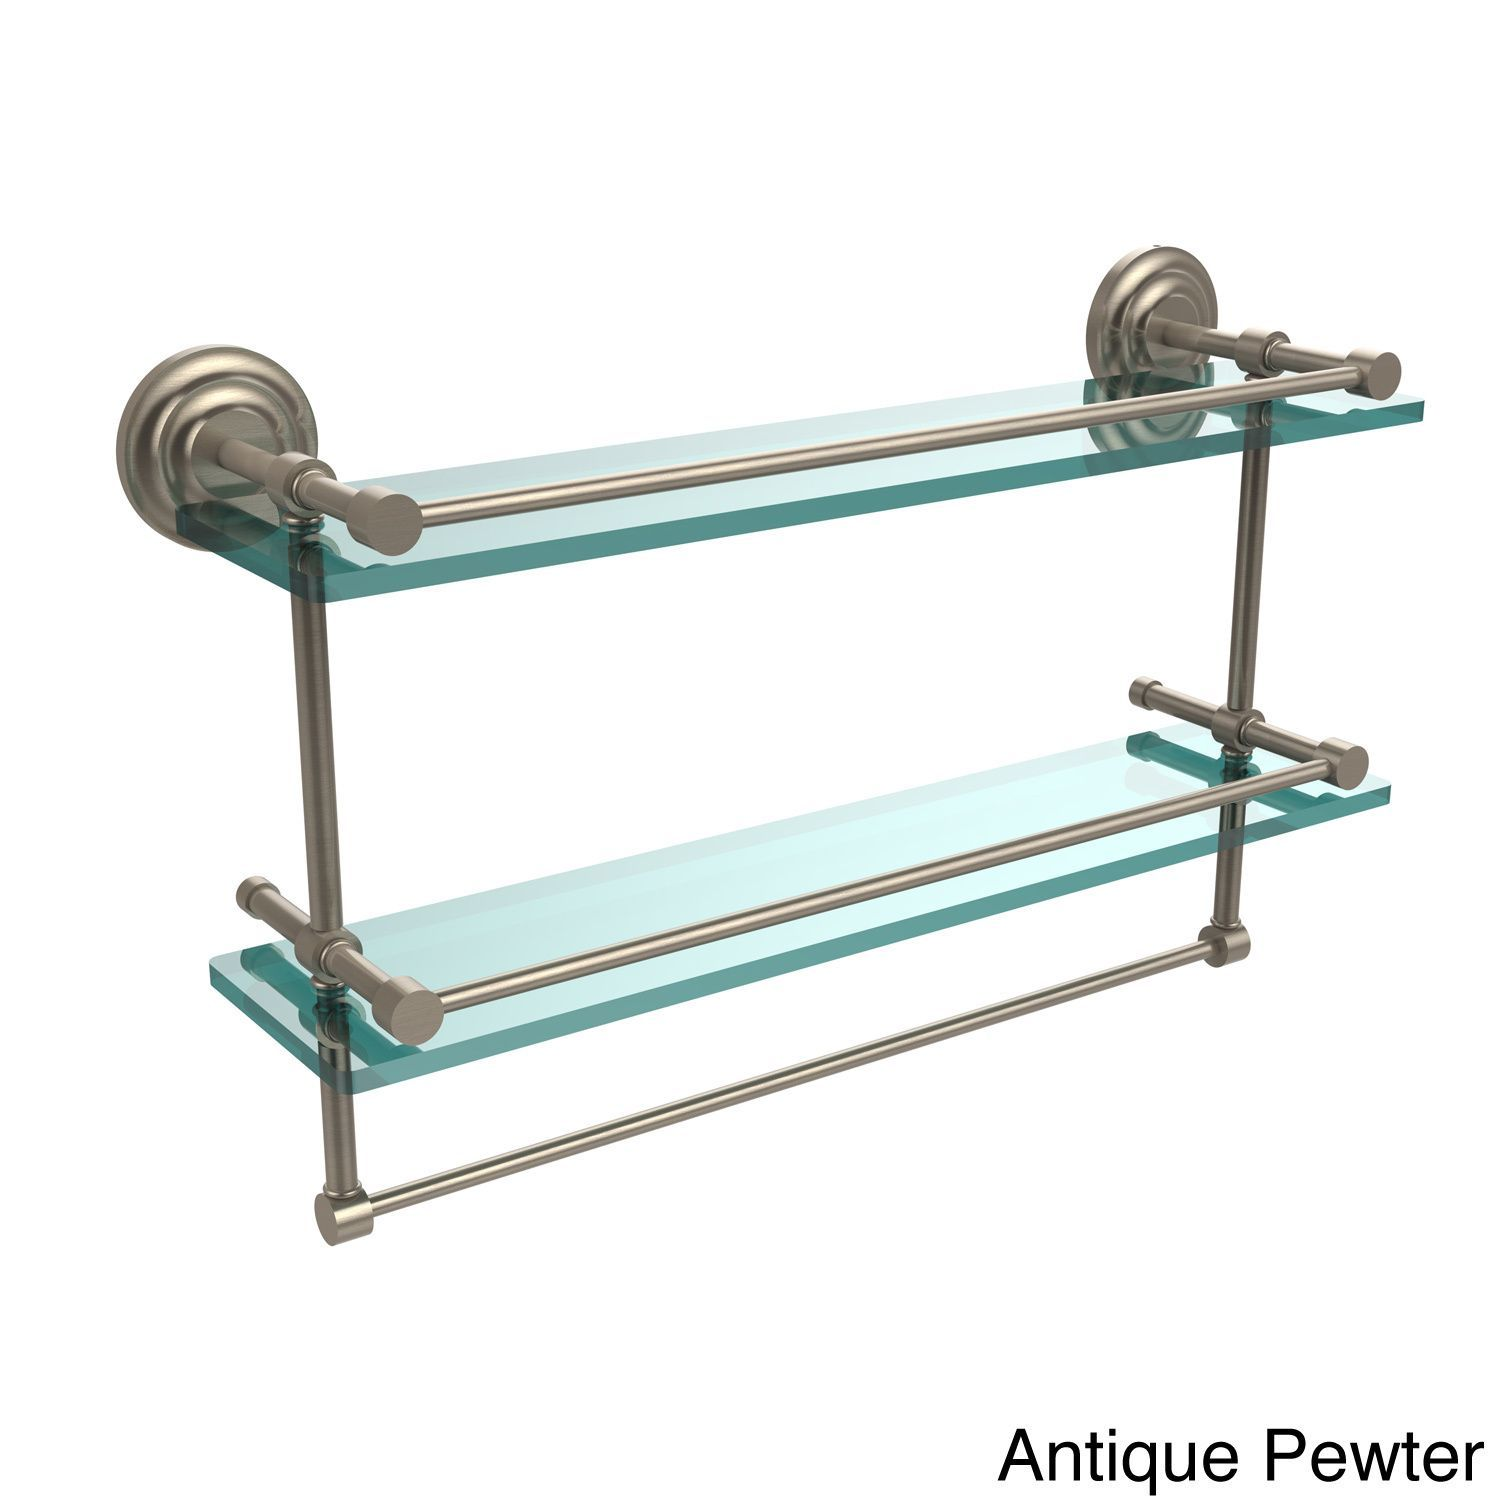 Allied Brass Que New Collection 22-inch Gallery Double Glass Shelf with Towel  Bar (Polished Chrome), Clear, Size 22